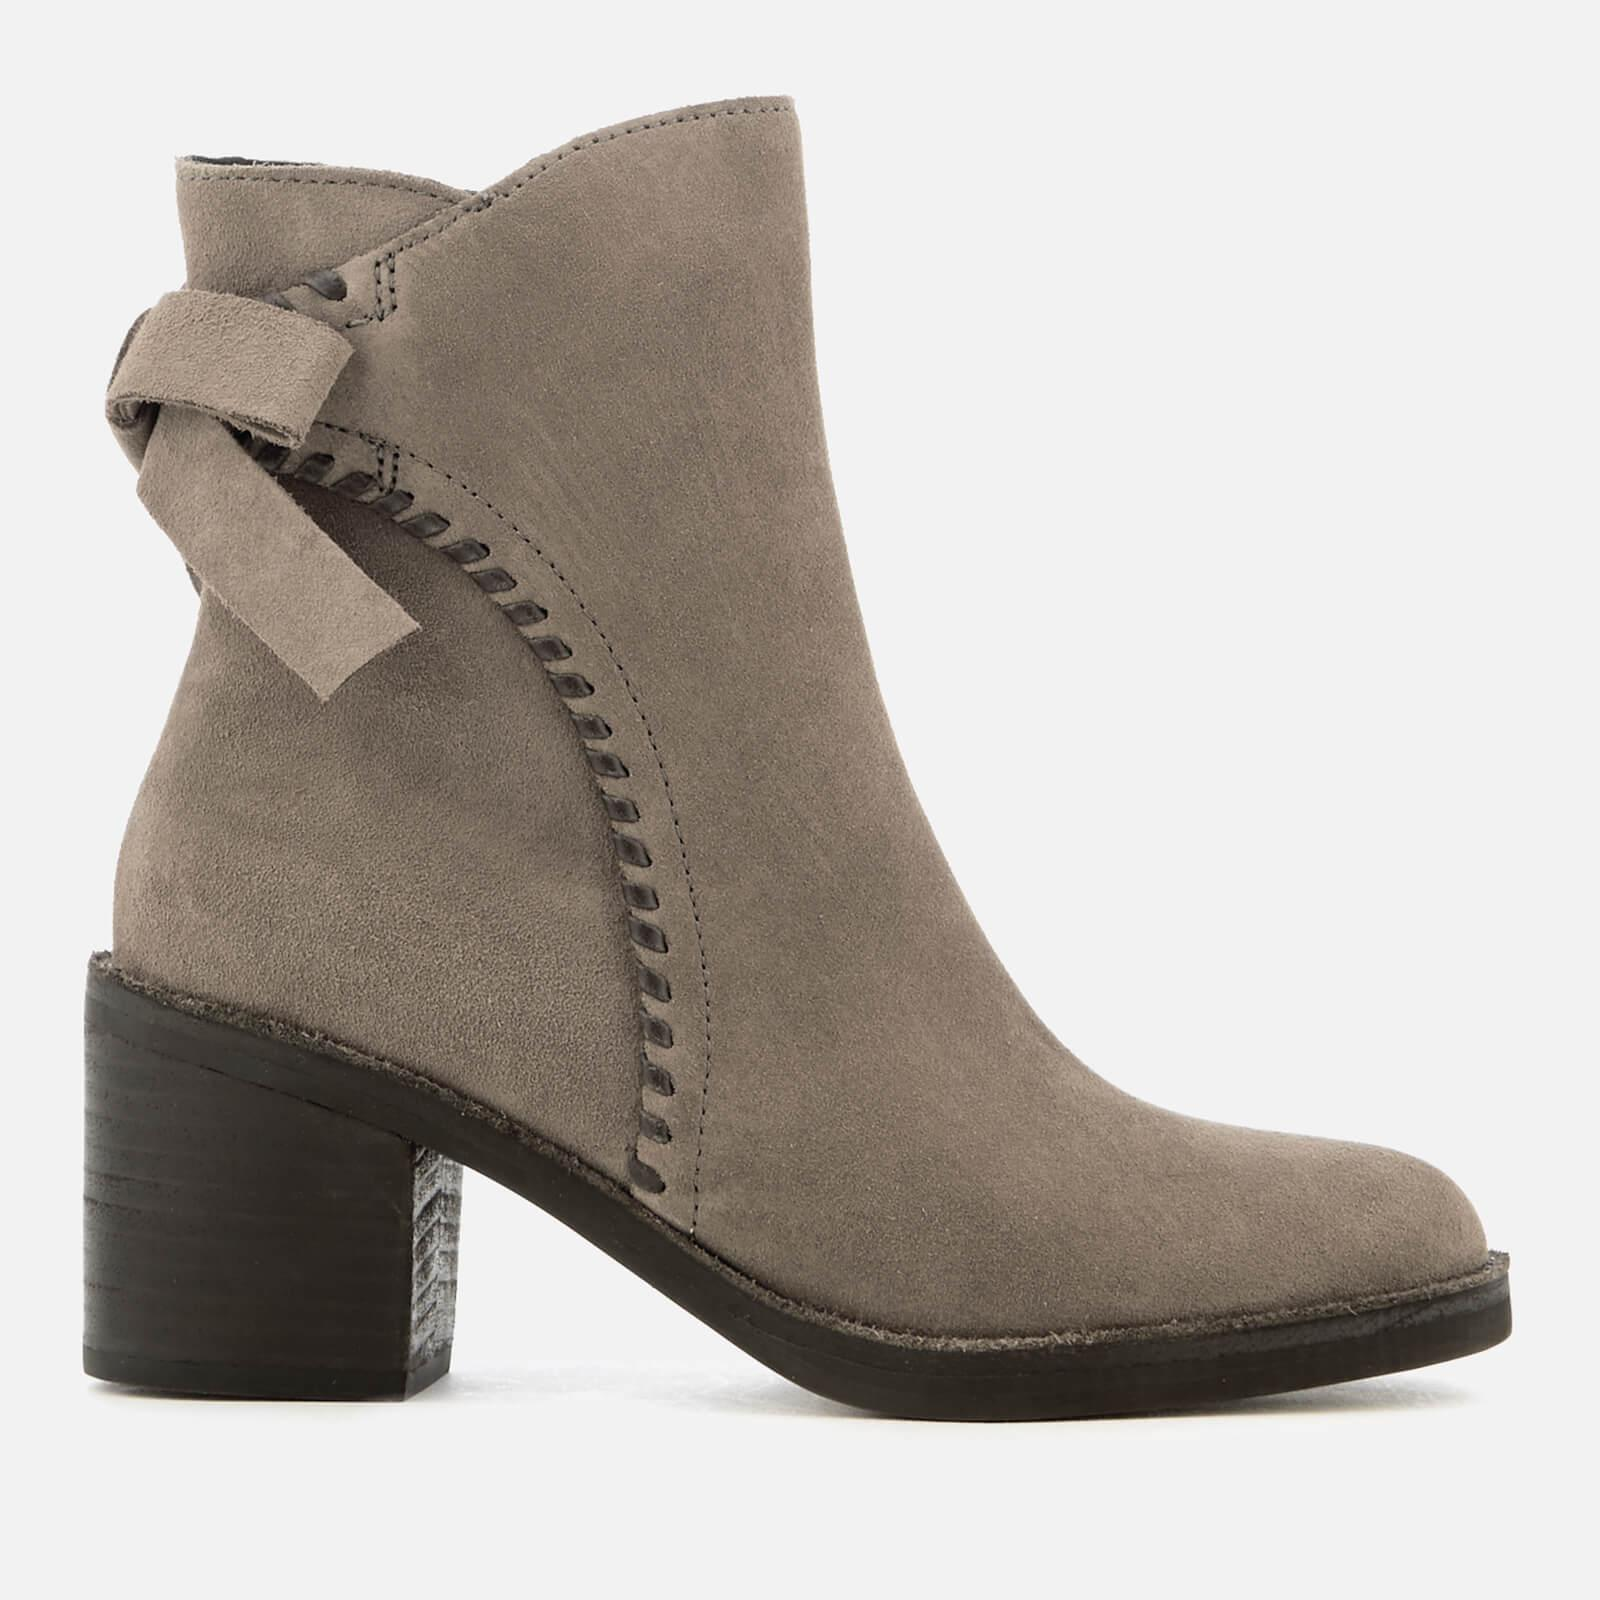 05c894e41f8 Women's Gray Fraise Whipstitch Suede Heeled Ankle Boots